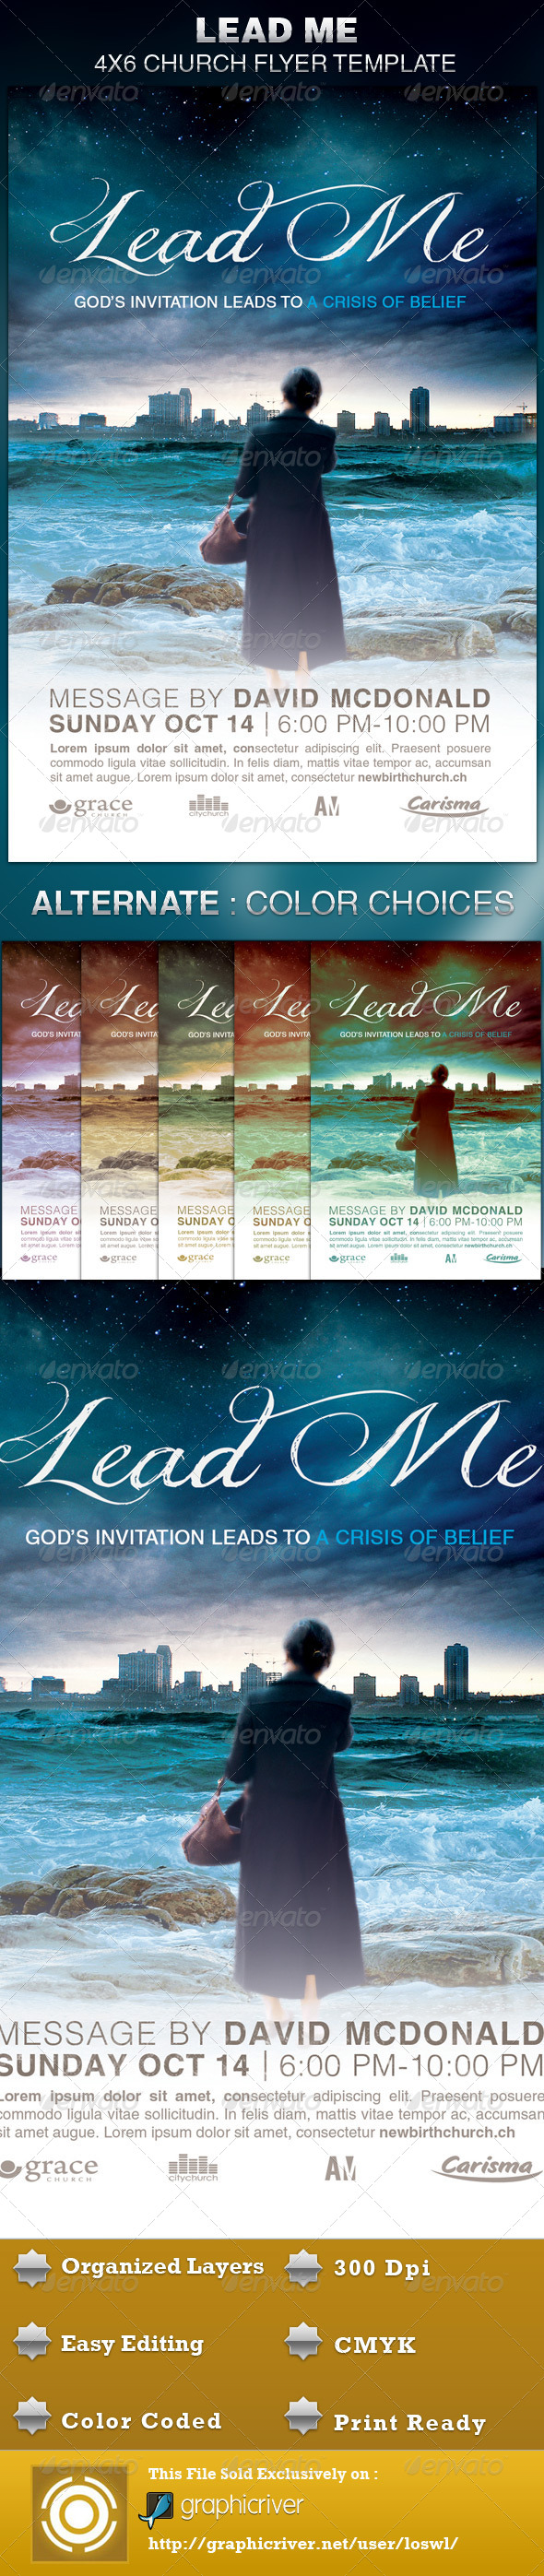 GraphicRiver Lead Me Church Flyer Template 5093223